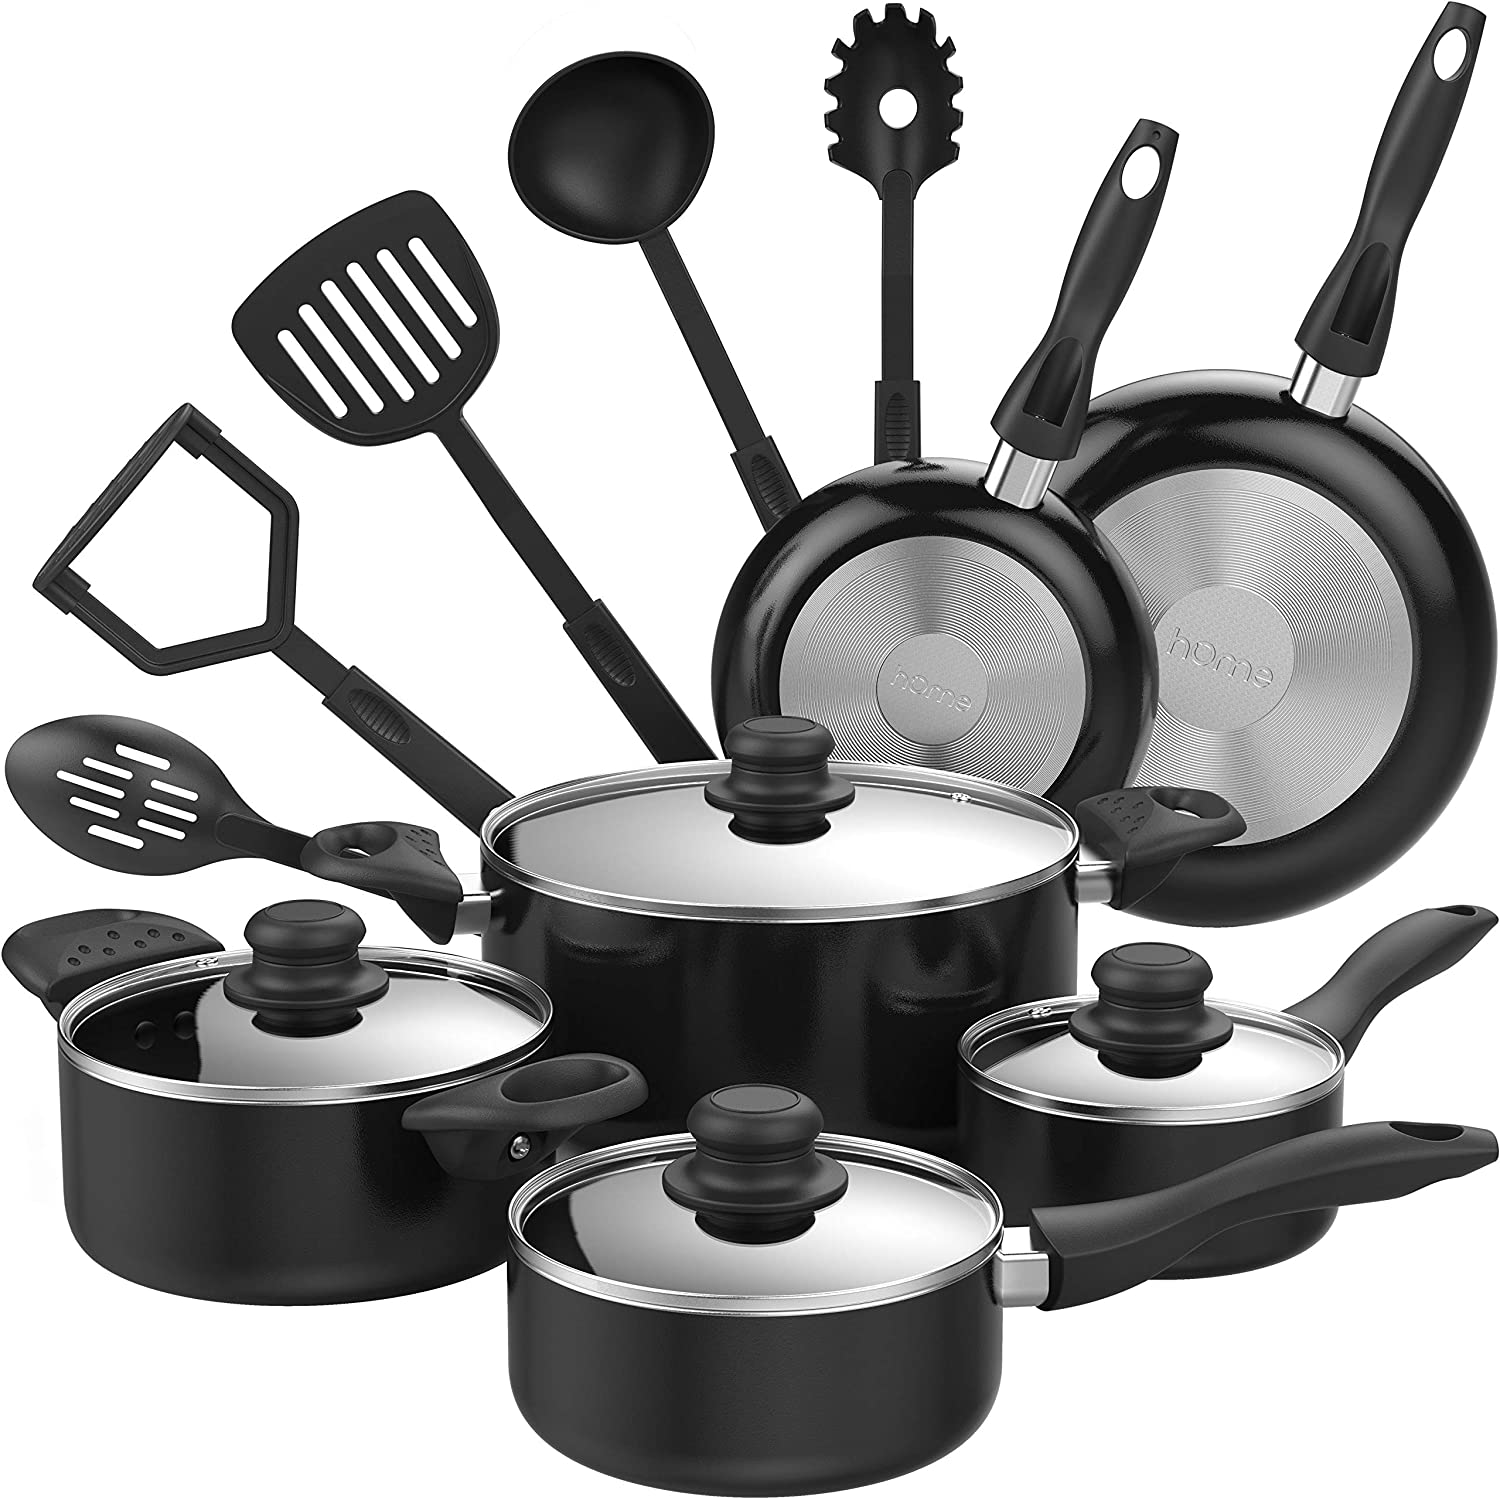 Homelabs 15 Piece Nonstick Cookware Set Multi Quart Aluminum Kitchen Pots And Pans Set With Nonstick Bpa Free Nylon Cooking Utensils Oven Safe